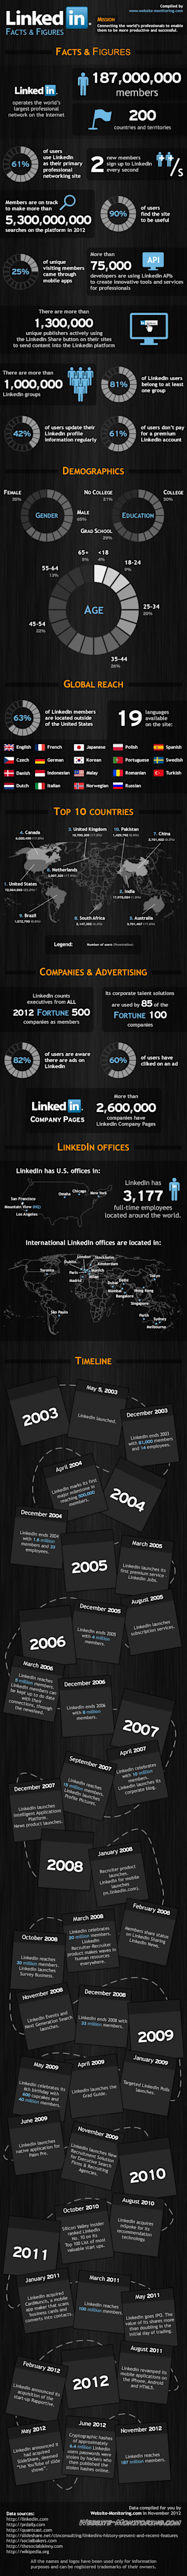 Expanding Your LinkedIn Profile Without Being A Creep (Infographic) image linkedin facts figures 50c73d7a2c69d resized 600